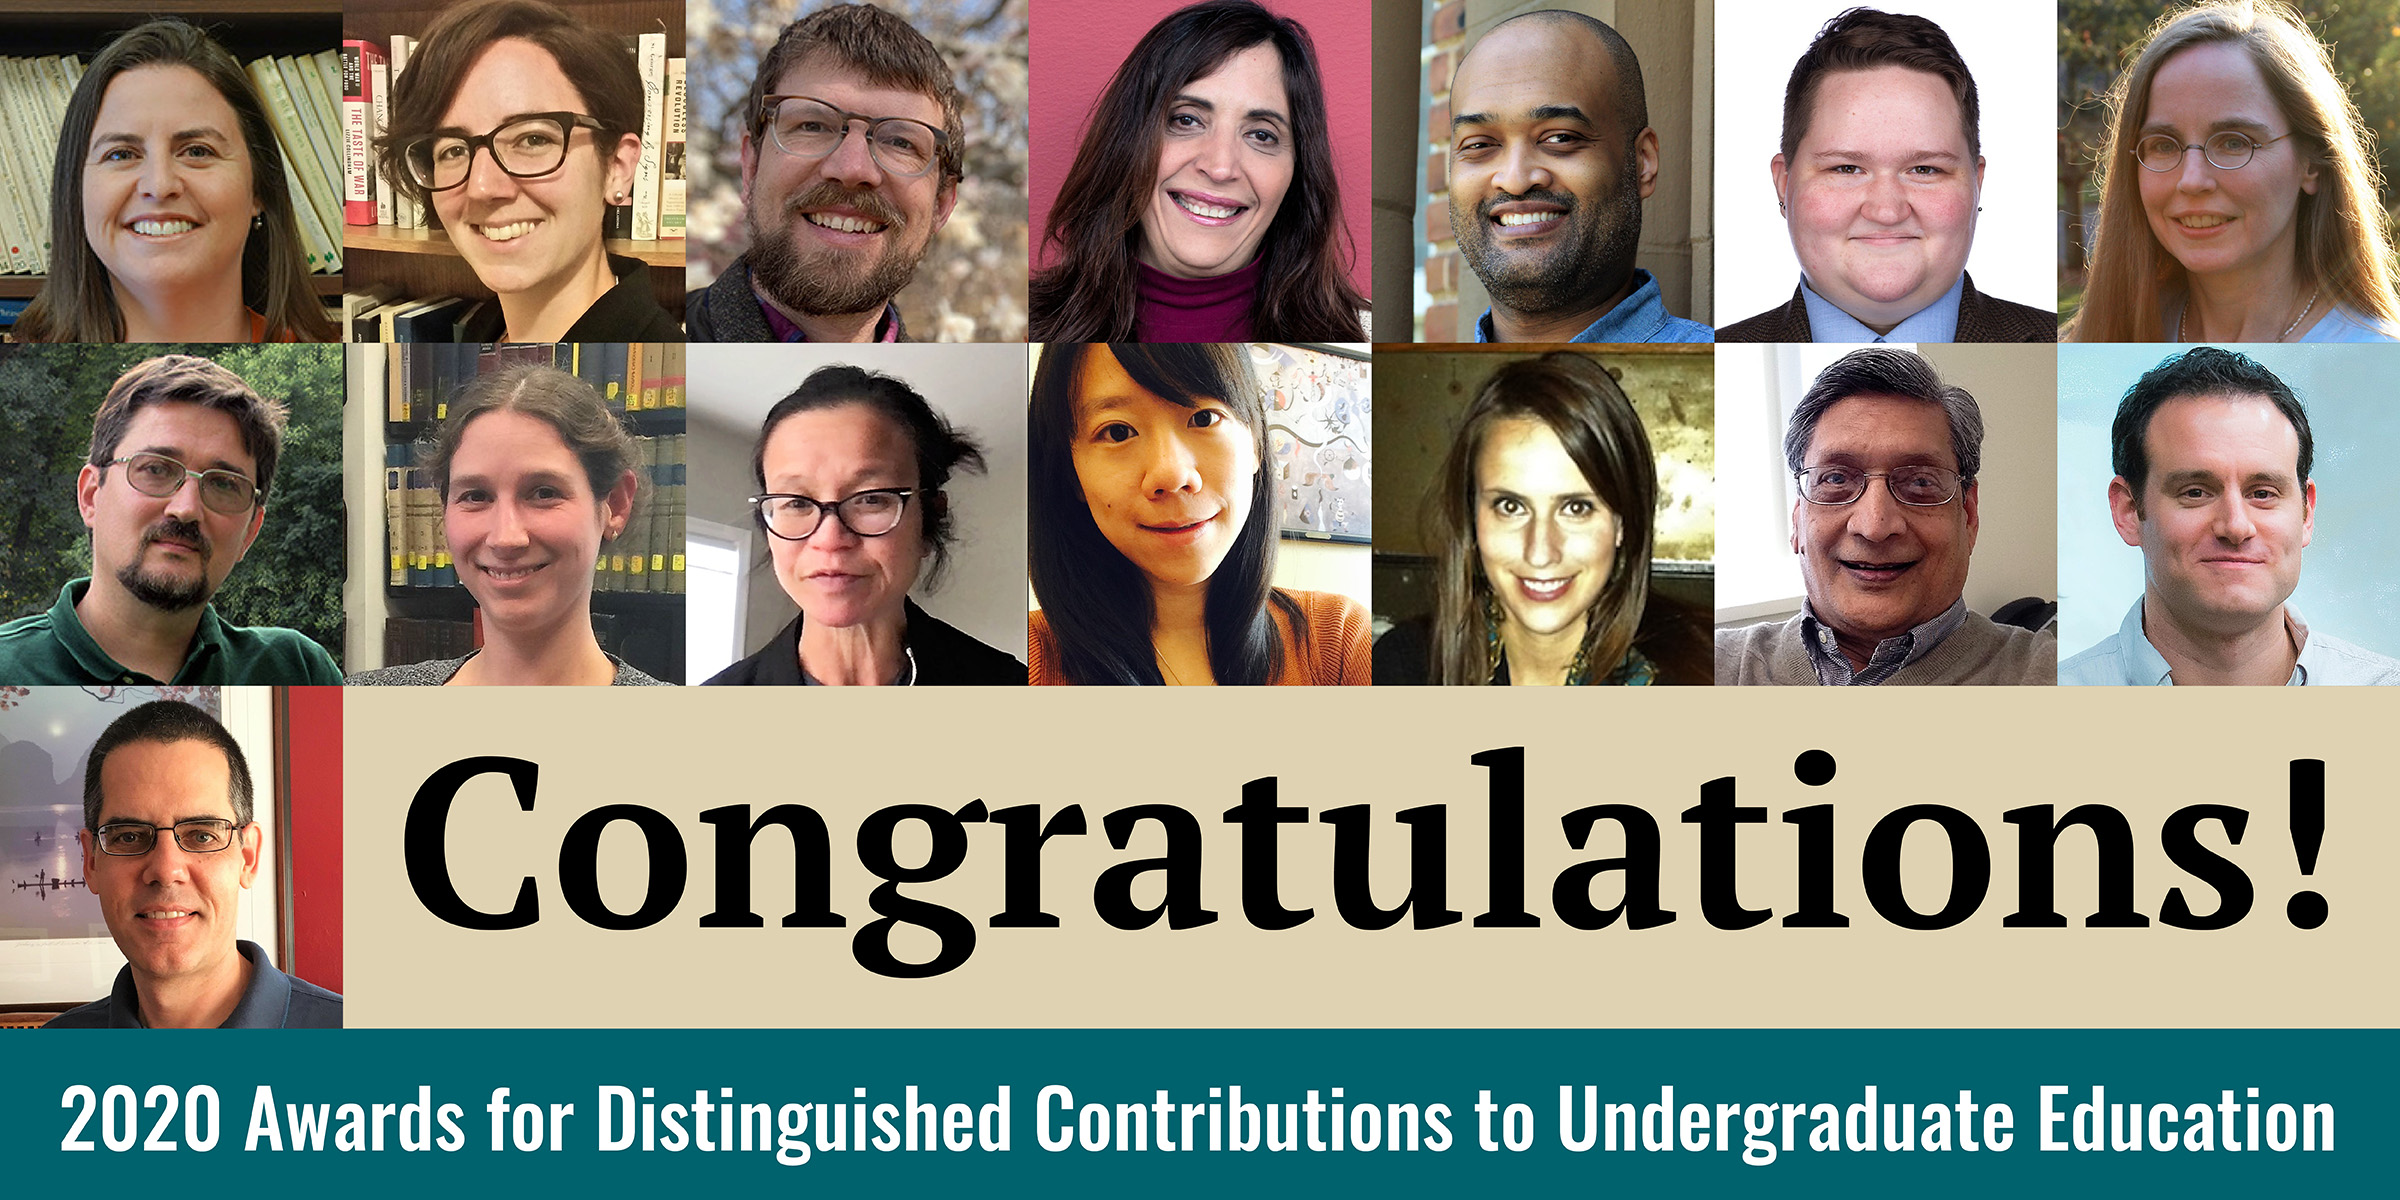 2020 Awards for Distinguished Contributions to Undergraduate Education